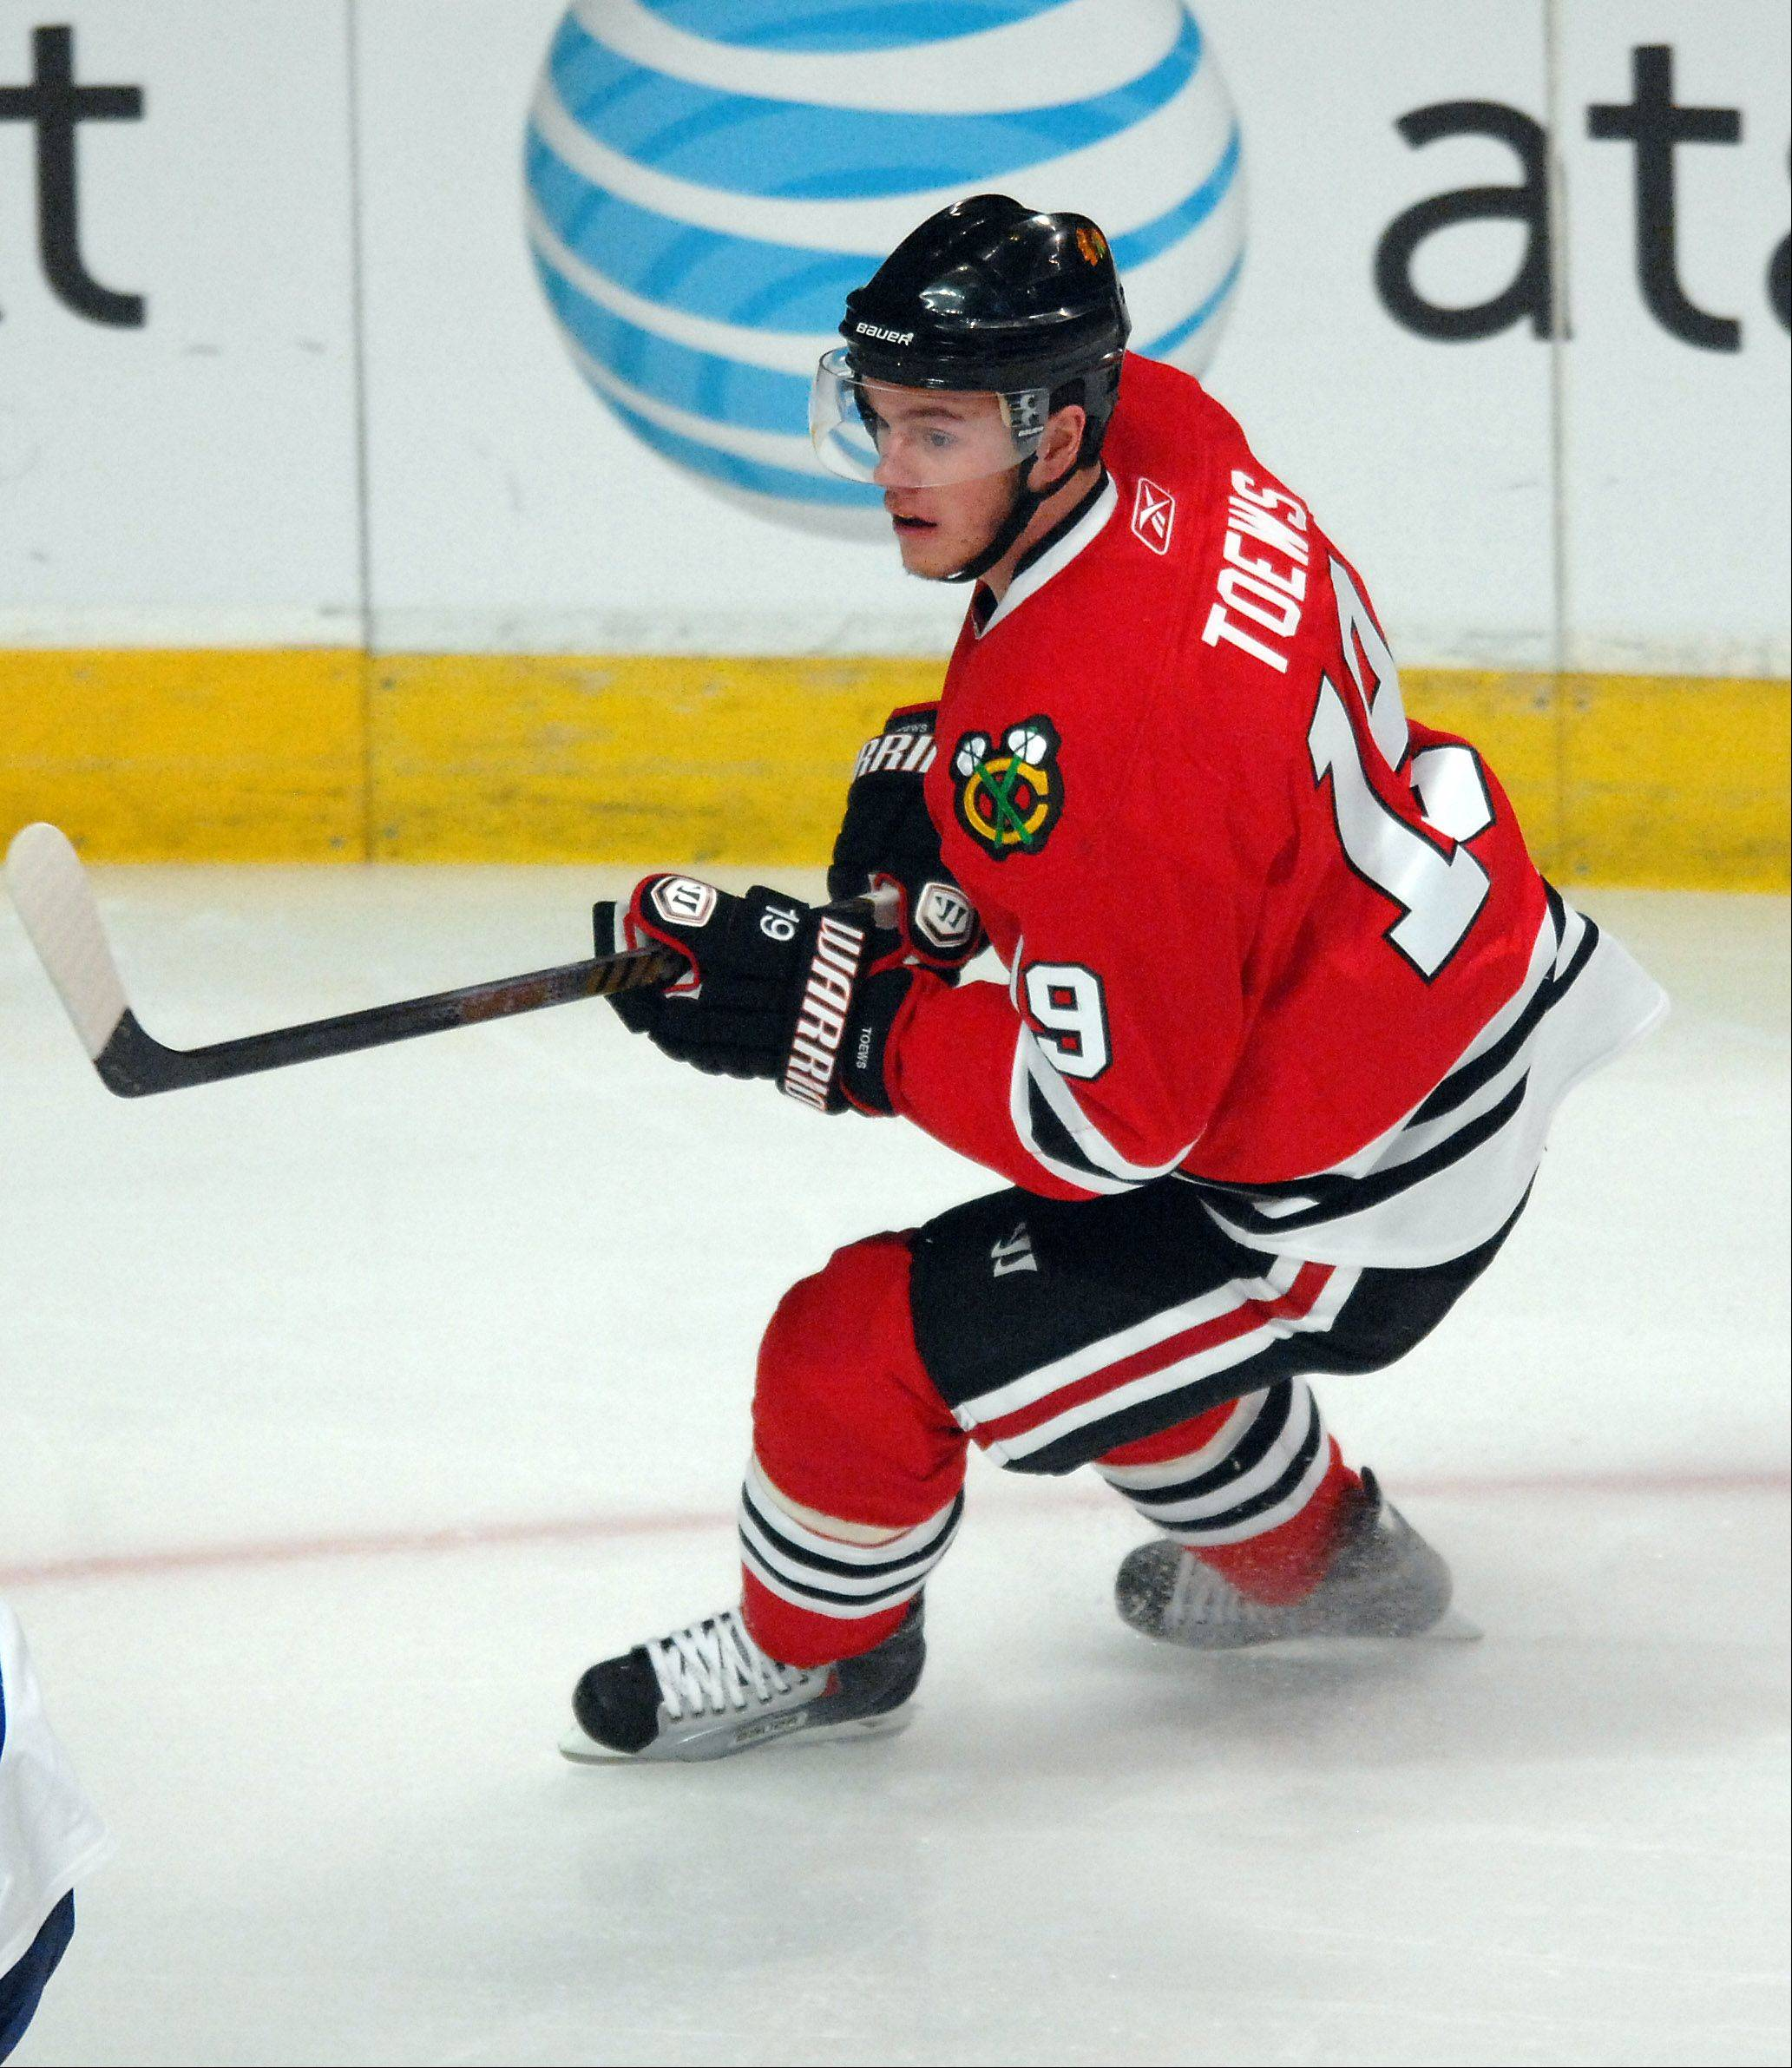 The Blackhawks have to be extremely careful with the return of team captain Jonathan Toews.